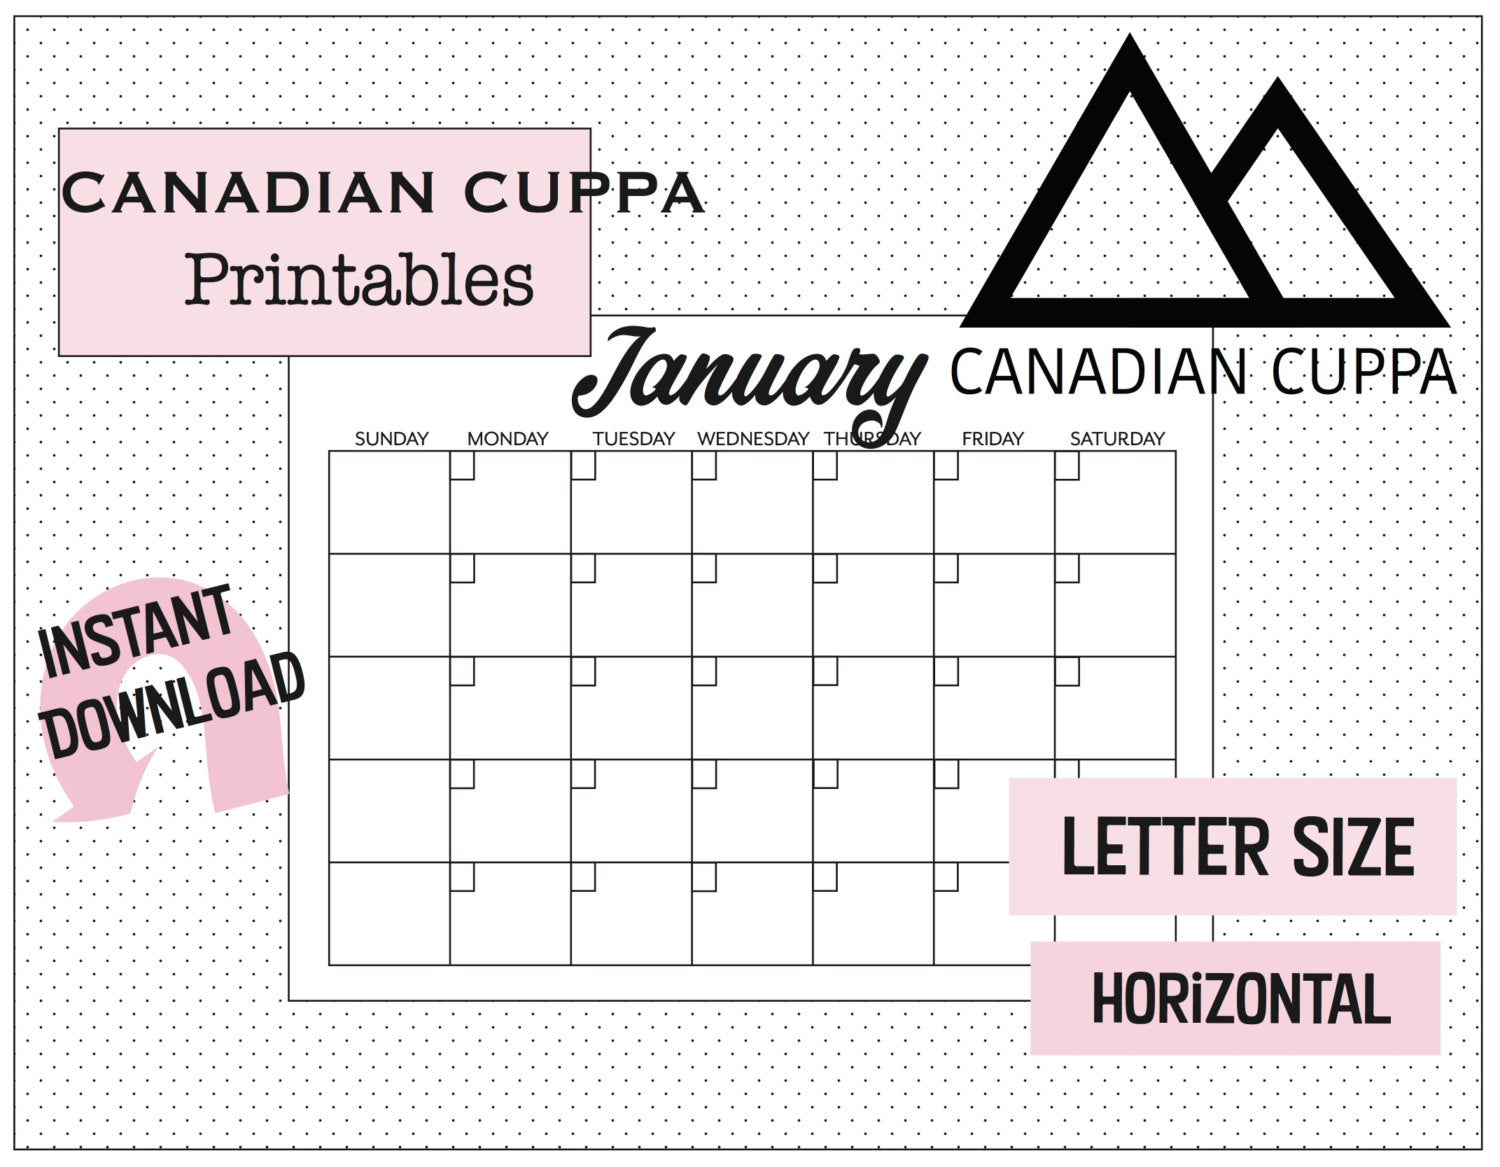 Sunday To Saturday Calendar   Calendar Printables Free Blank intended for Weekly Calendar Sunday To Saturday